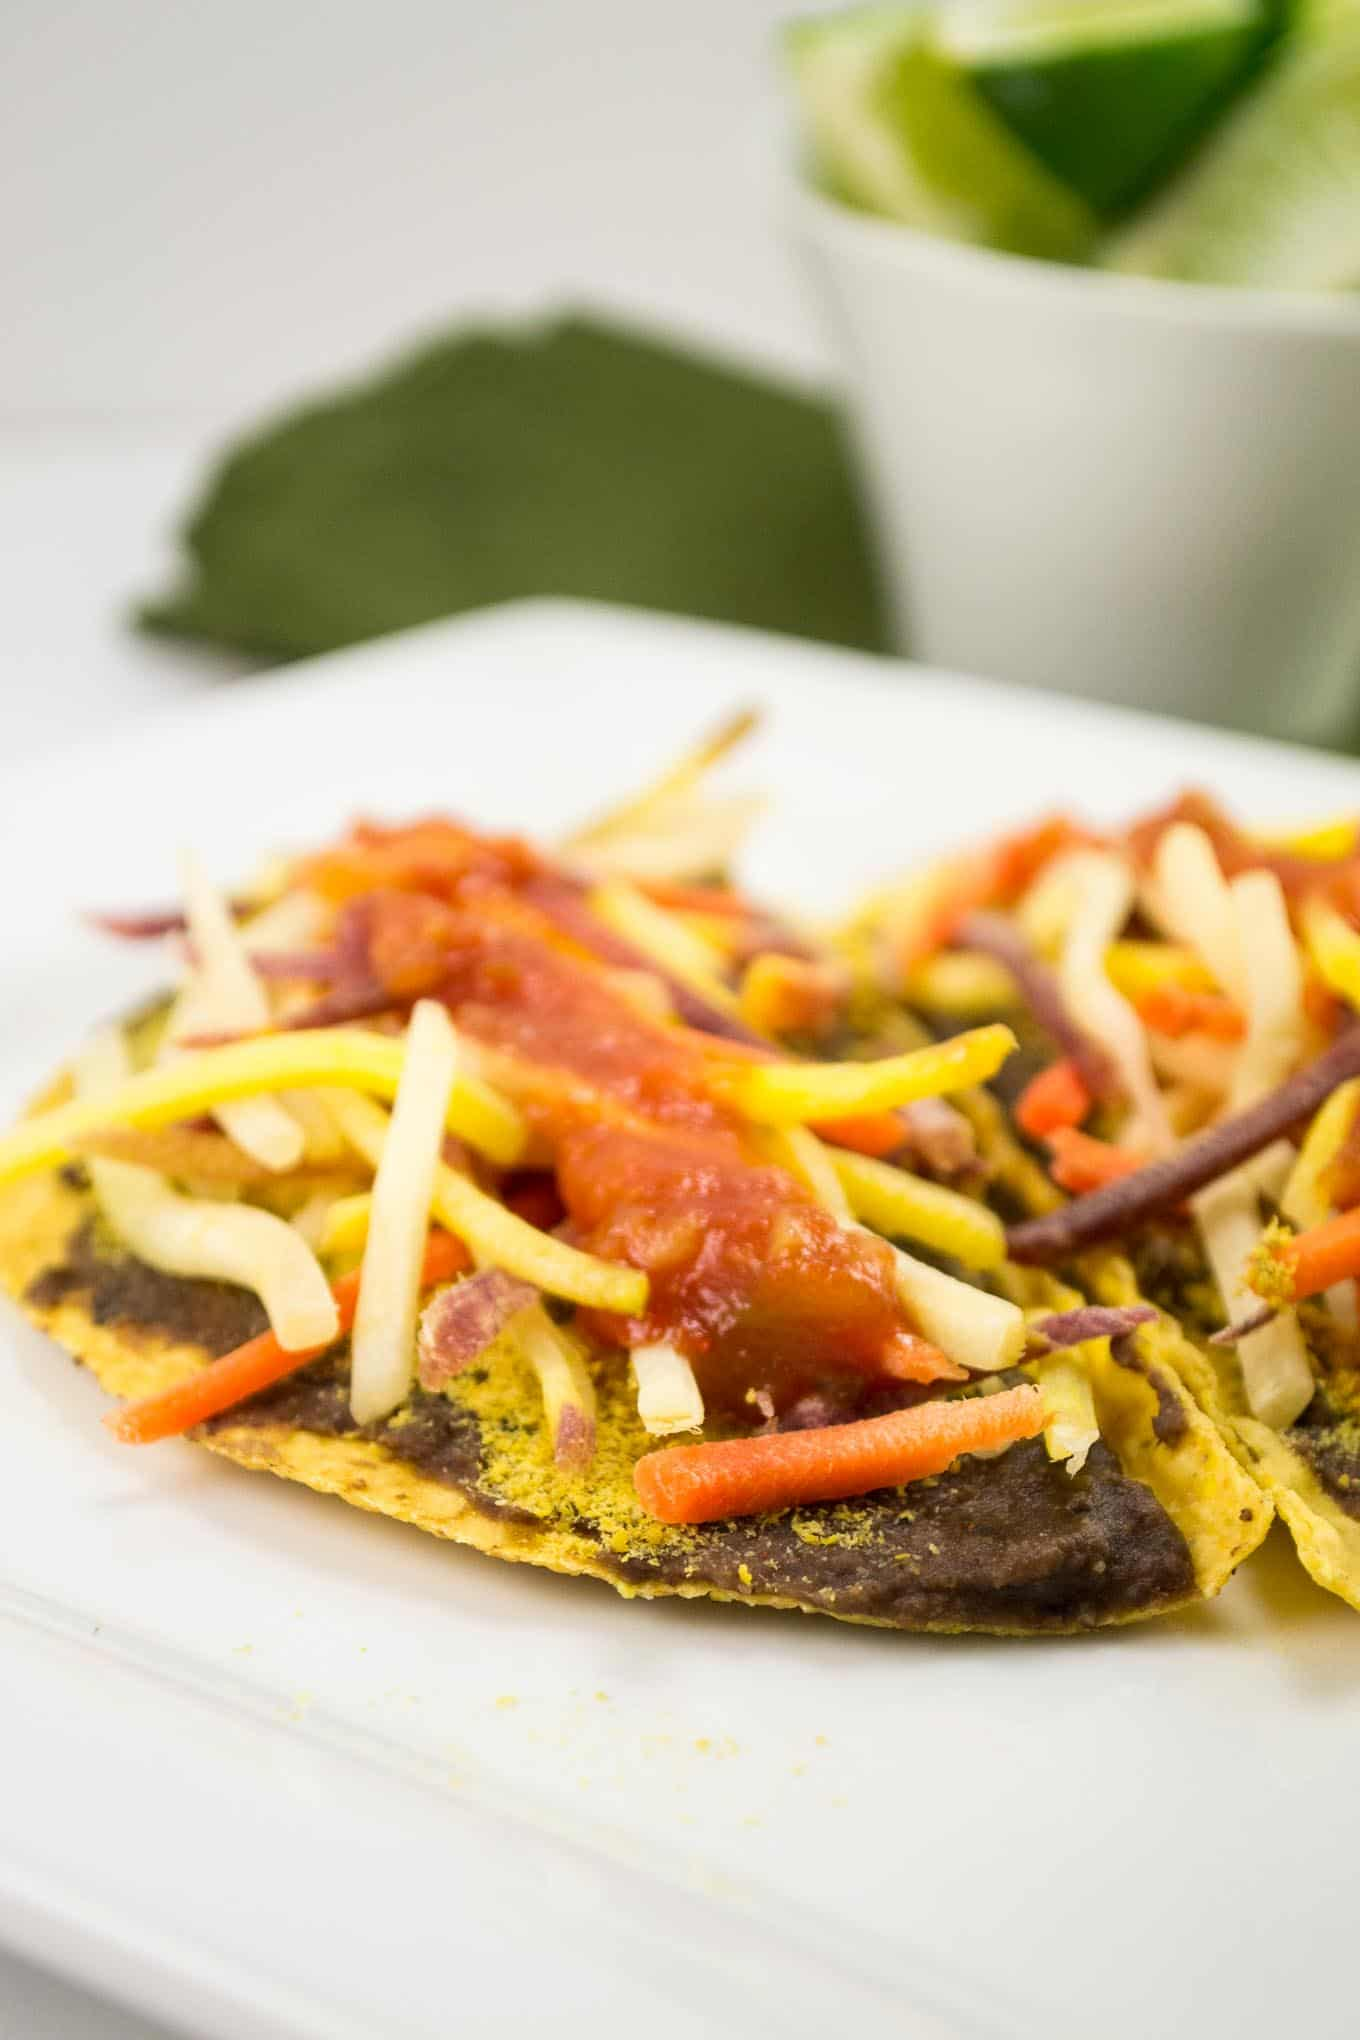 quick & easy vegan tacos - a weeknight family favorite recipe!